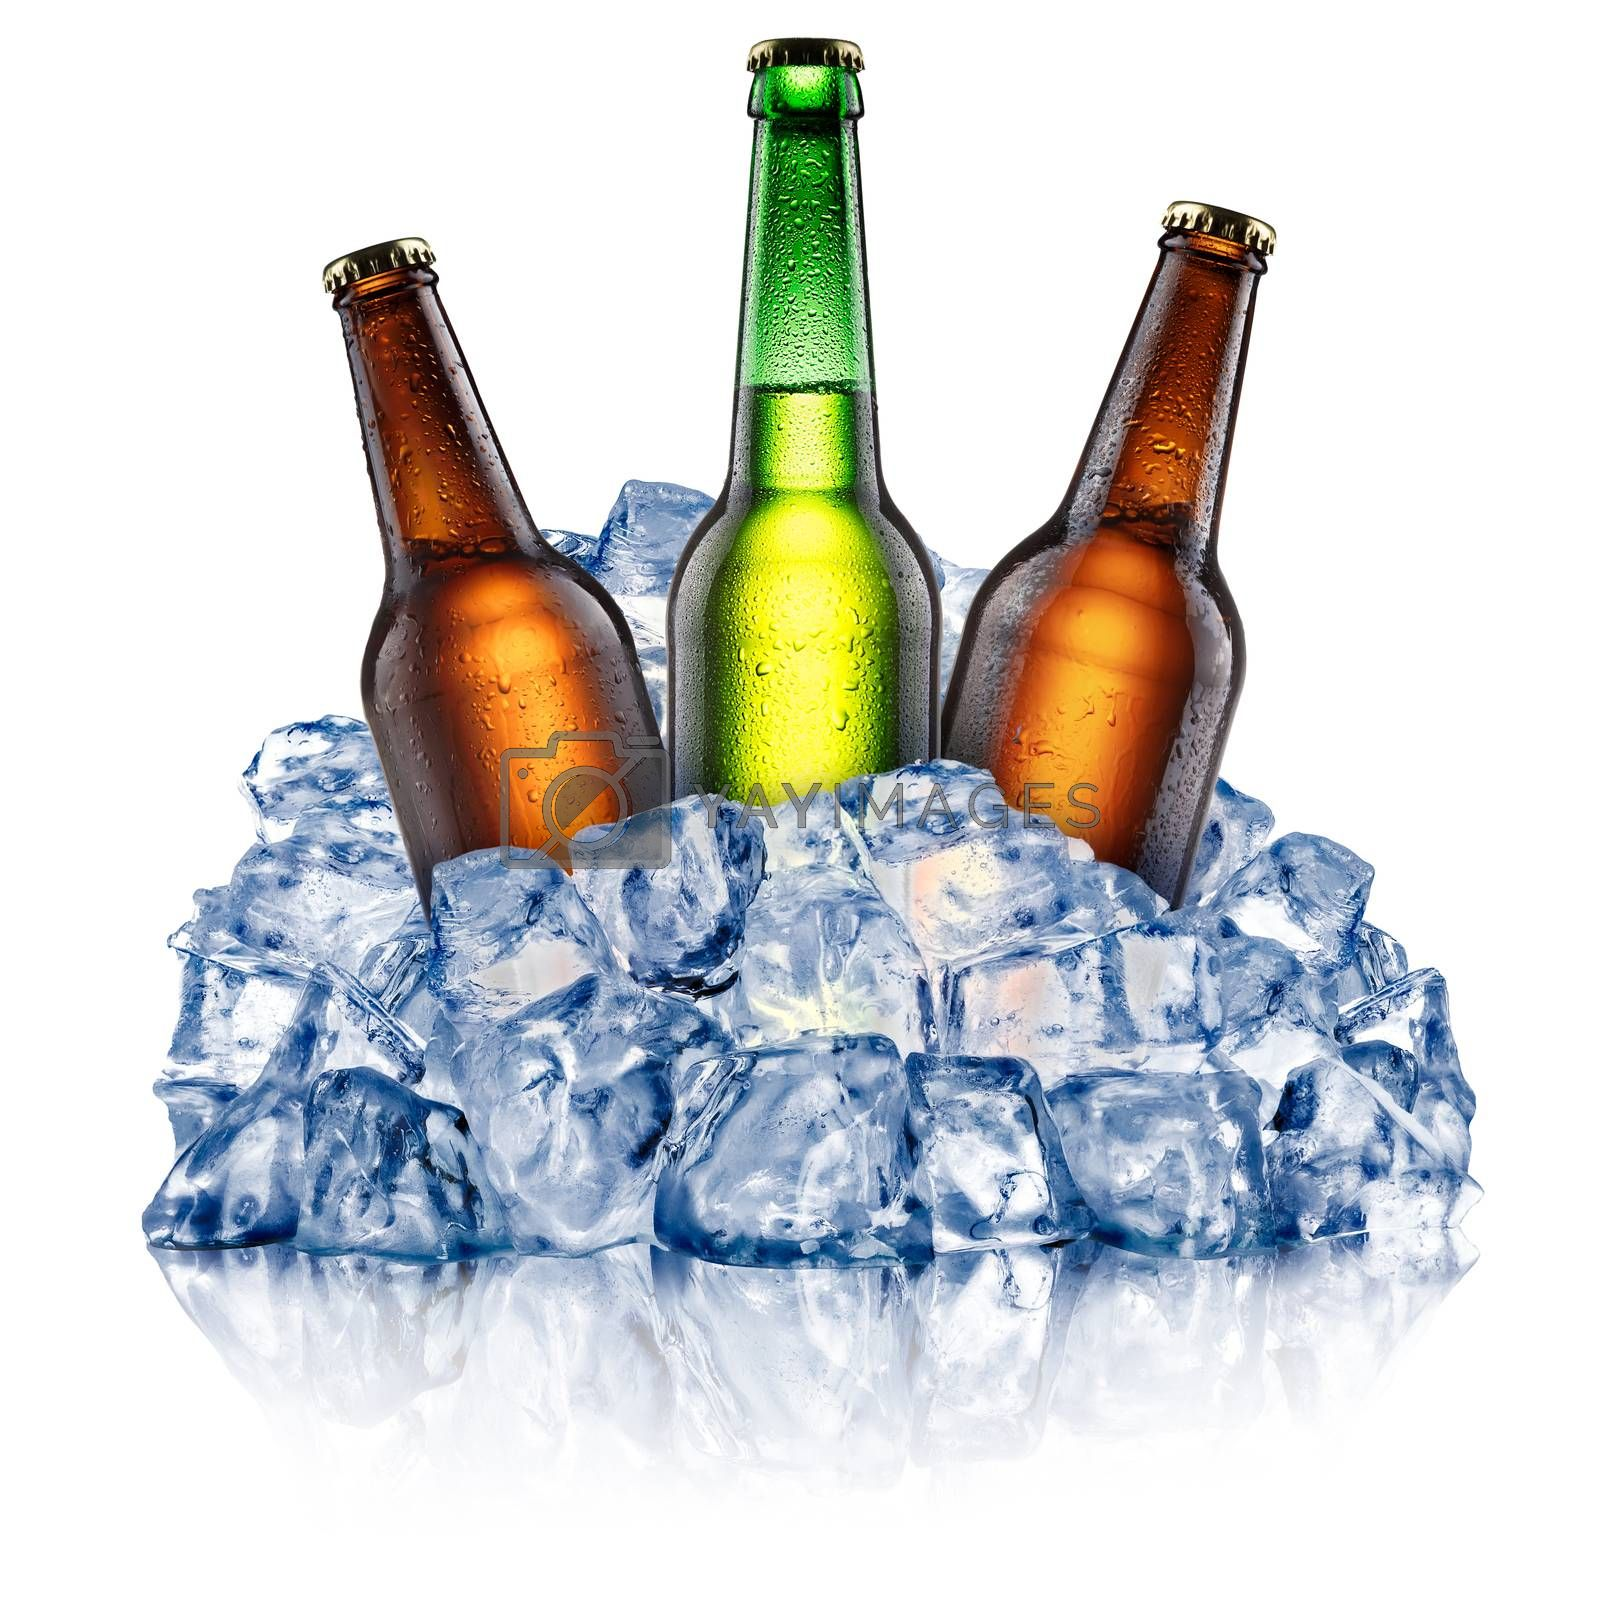 Green and brown beer bottles, cooling down in a rough crushed ice. Clipping paths